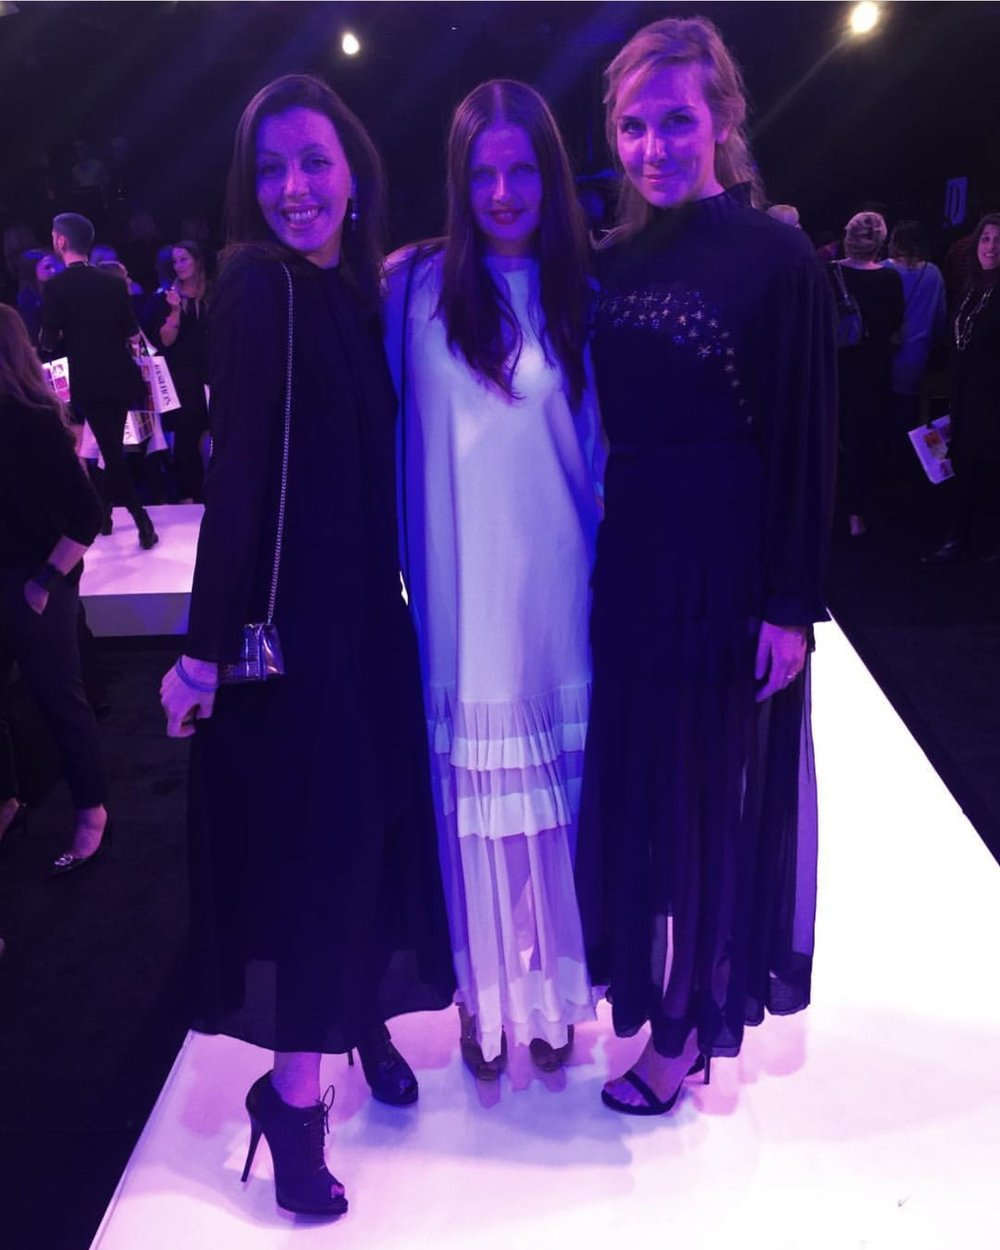 Milena, Valentina & Valentia's Creative Director, Tereza, photographer based in New-York and Lana, space engineer from Seattle, all look radiant in silk chiffon dresses by Valentina & Valentia.